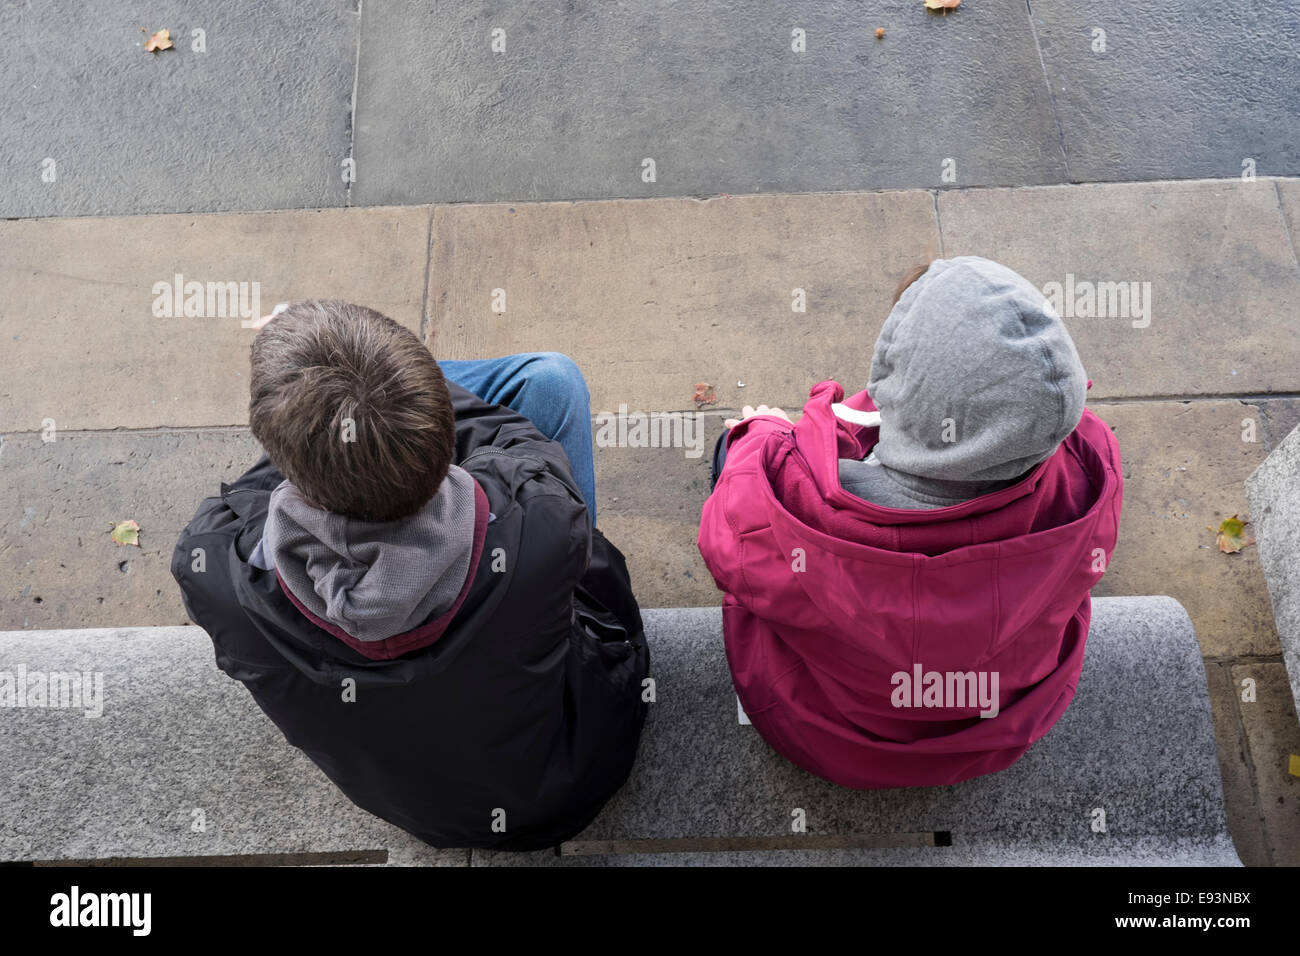 Aerial Shot Of Two People Sitting On A Bench